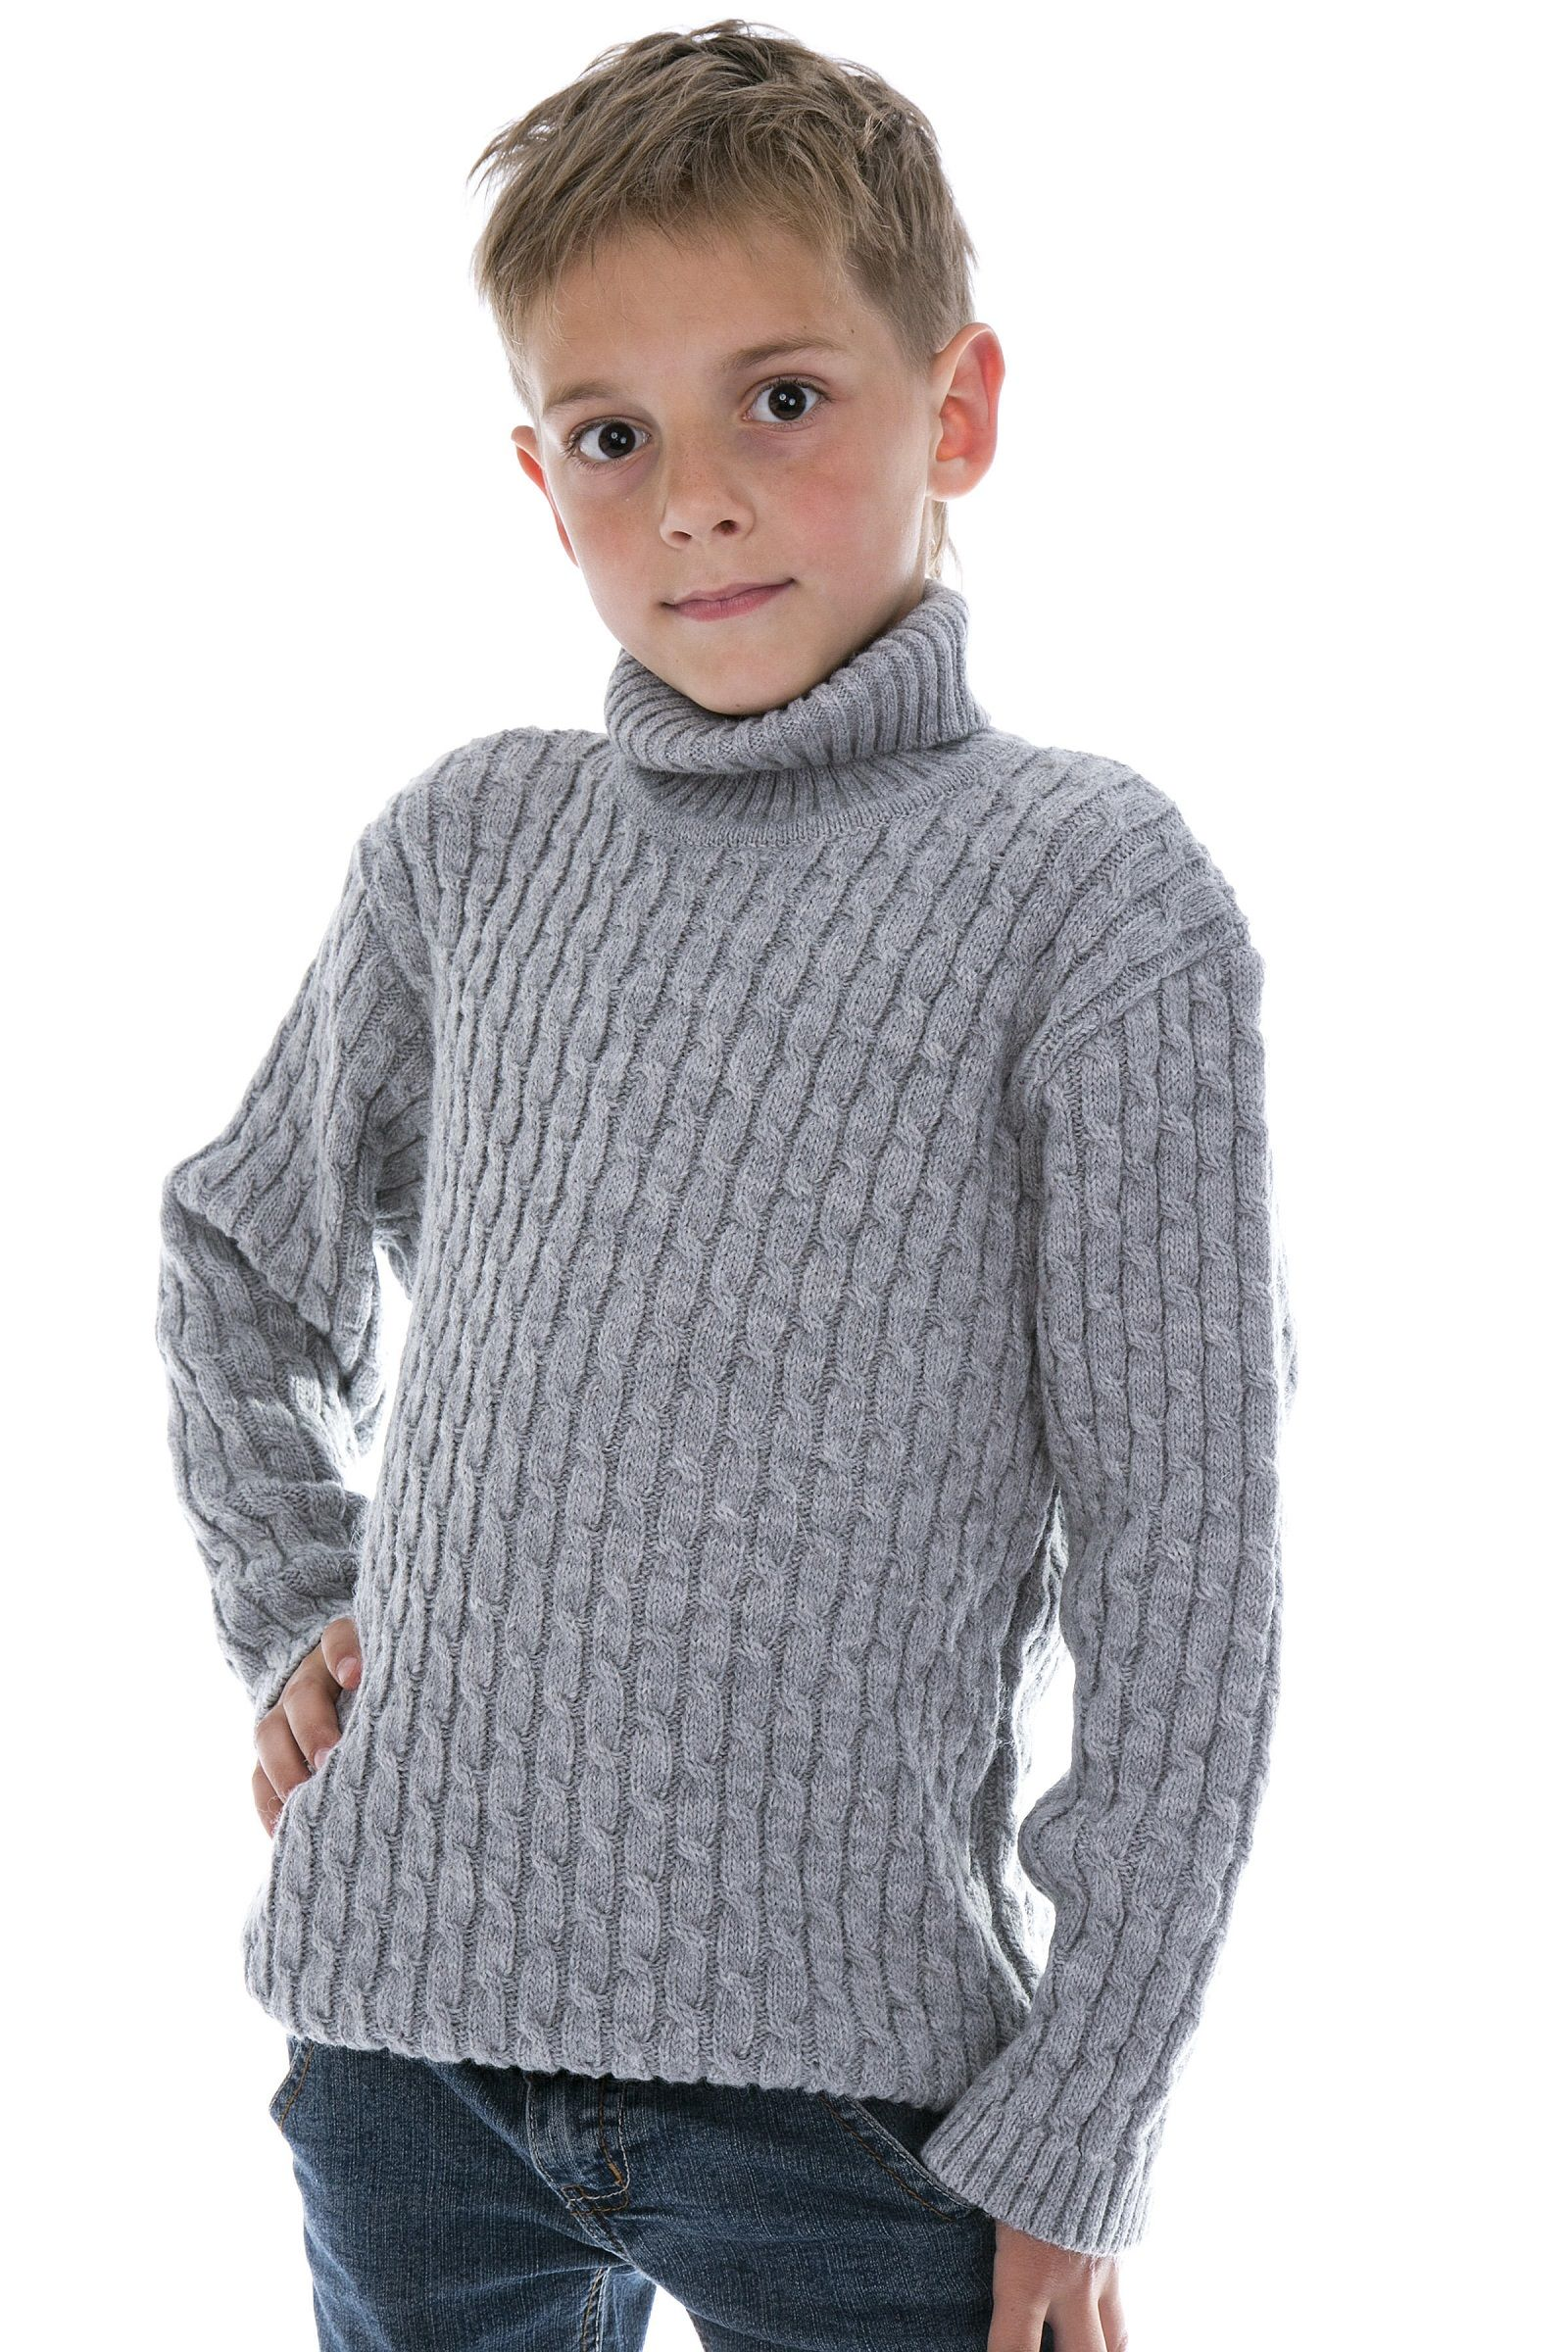 Pullover Jungs Boys Kids Alpaca Turtleneck Sweater Photo From Make Boys Kids